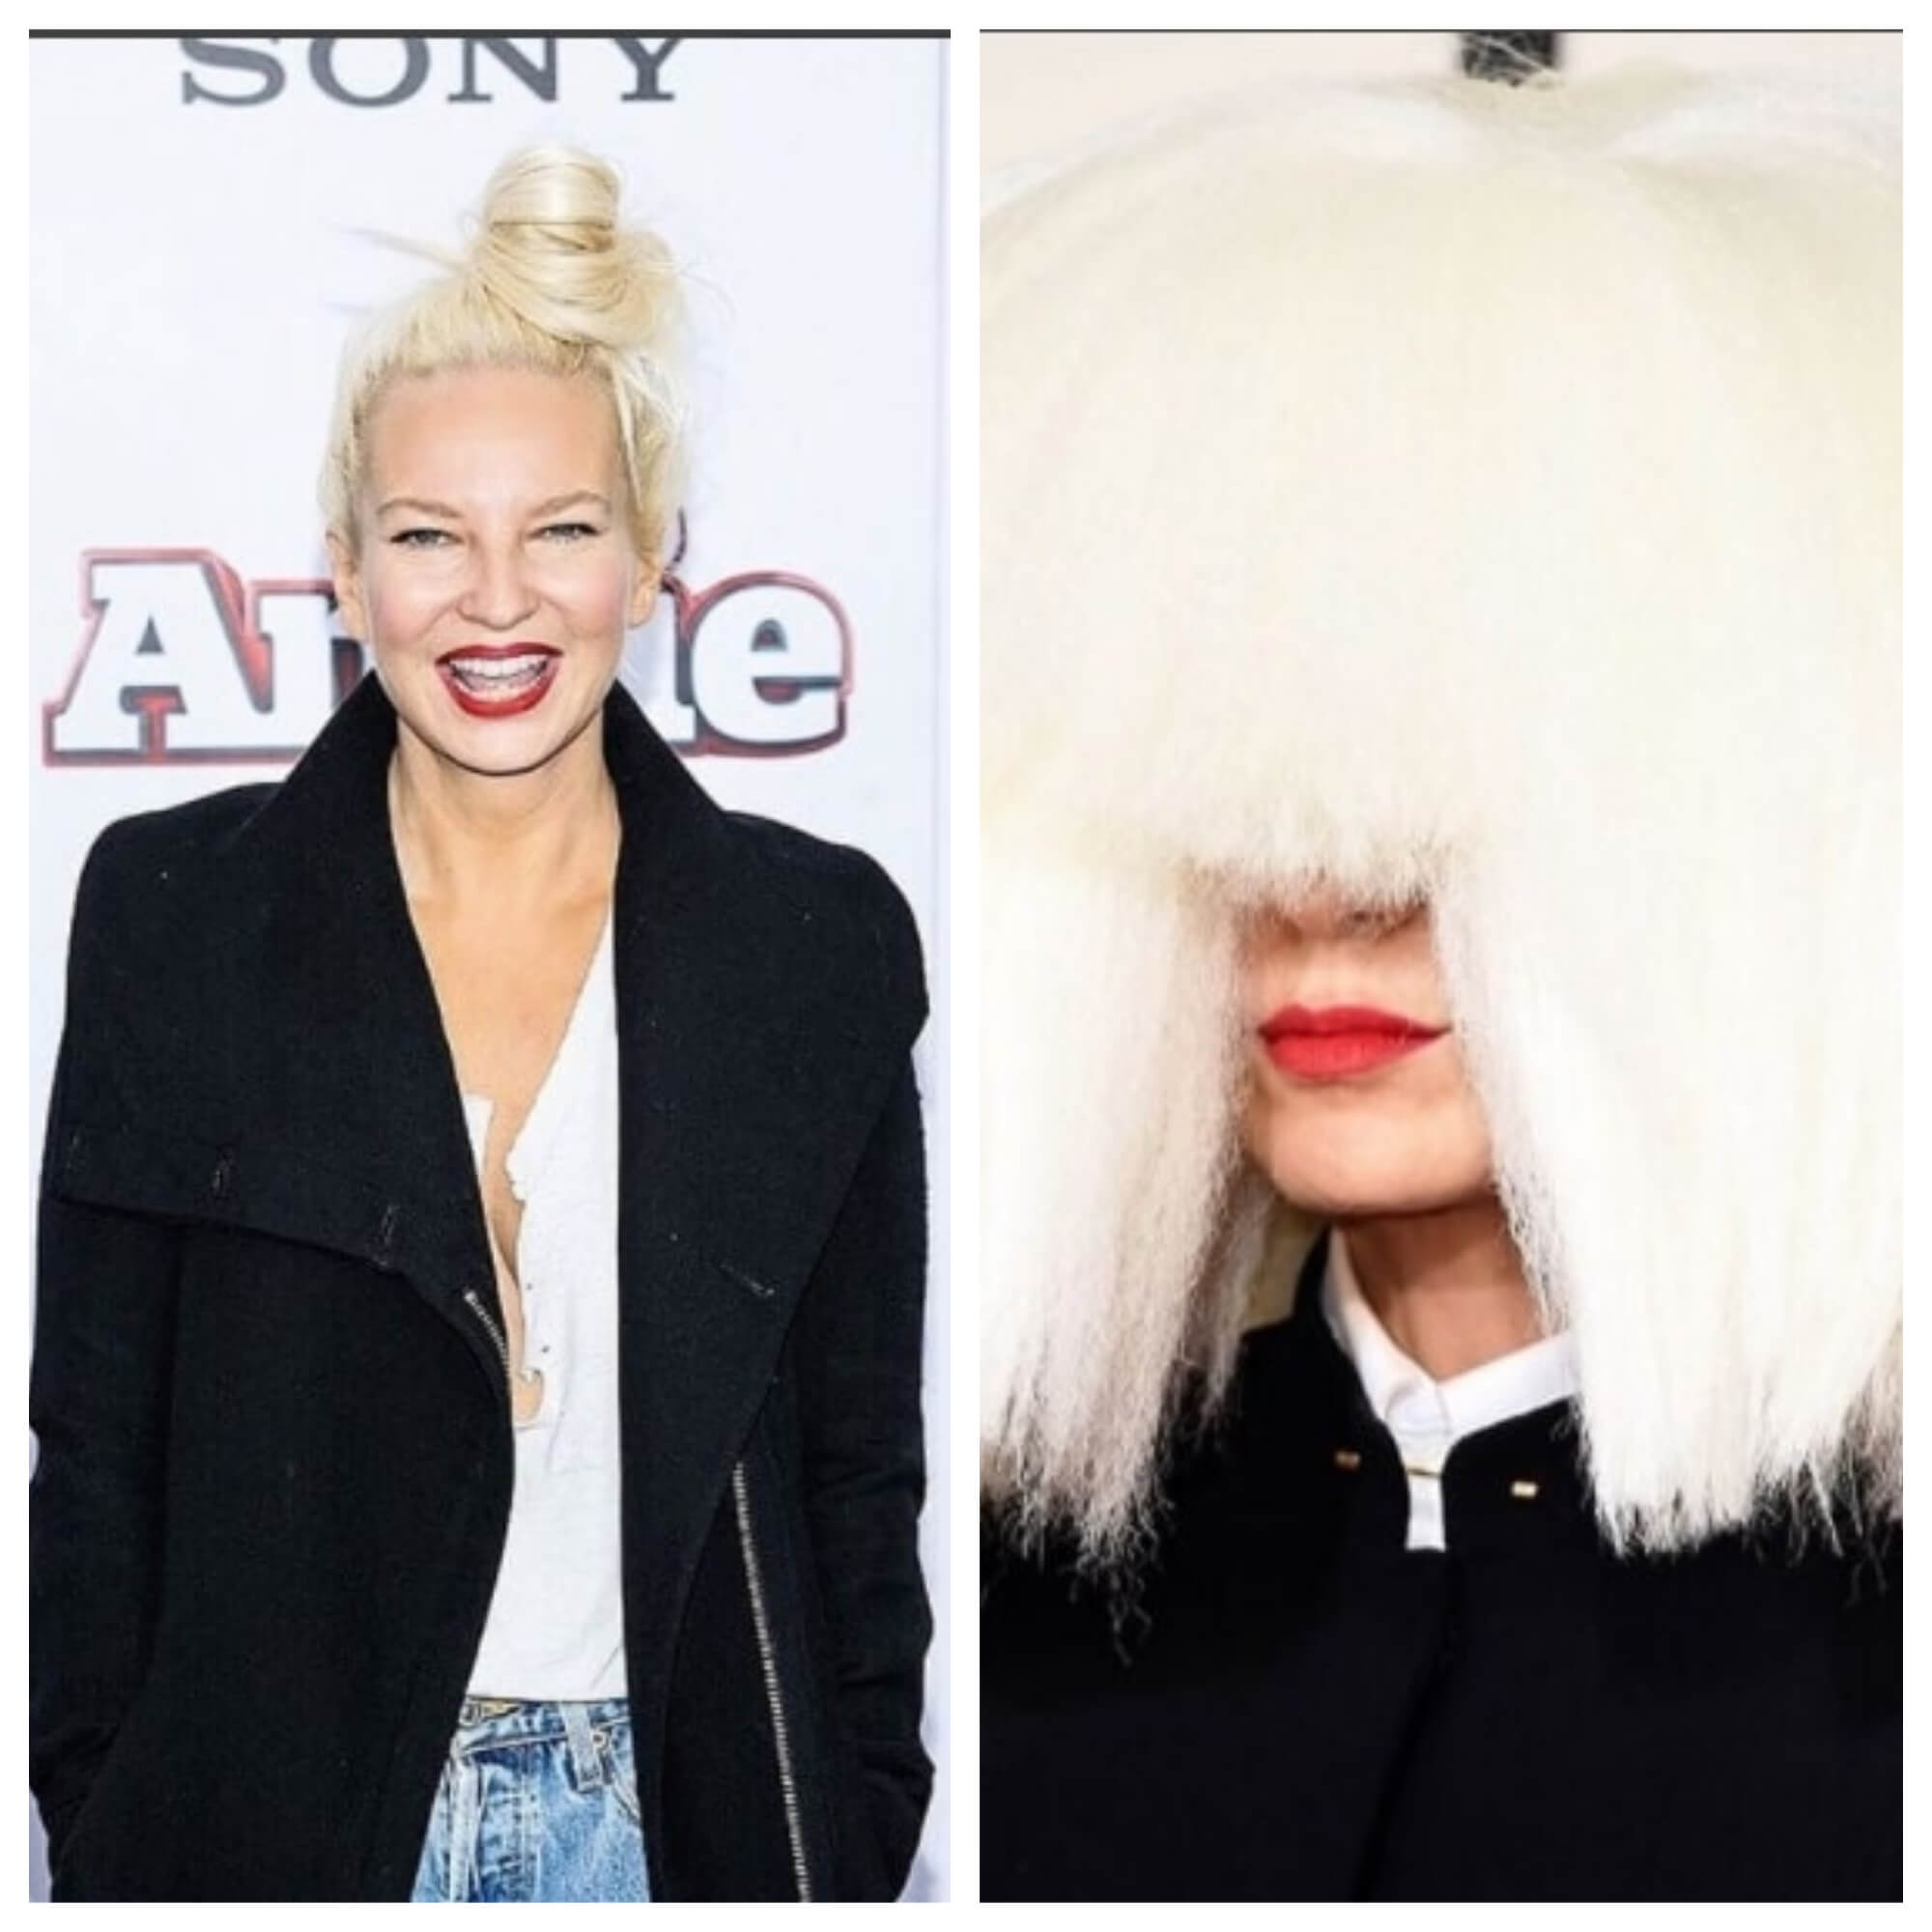 Sia just broke the rules for how celebrities respond to privacy threats